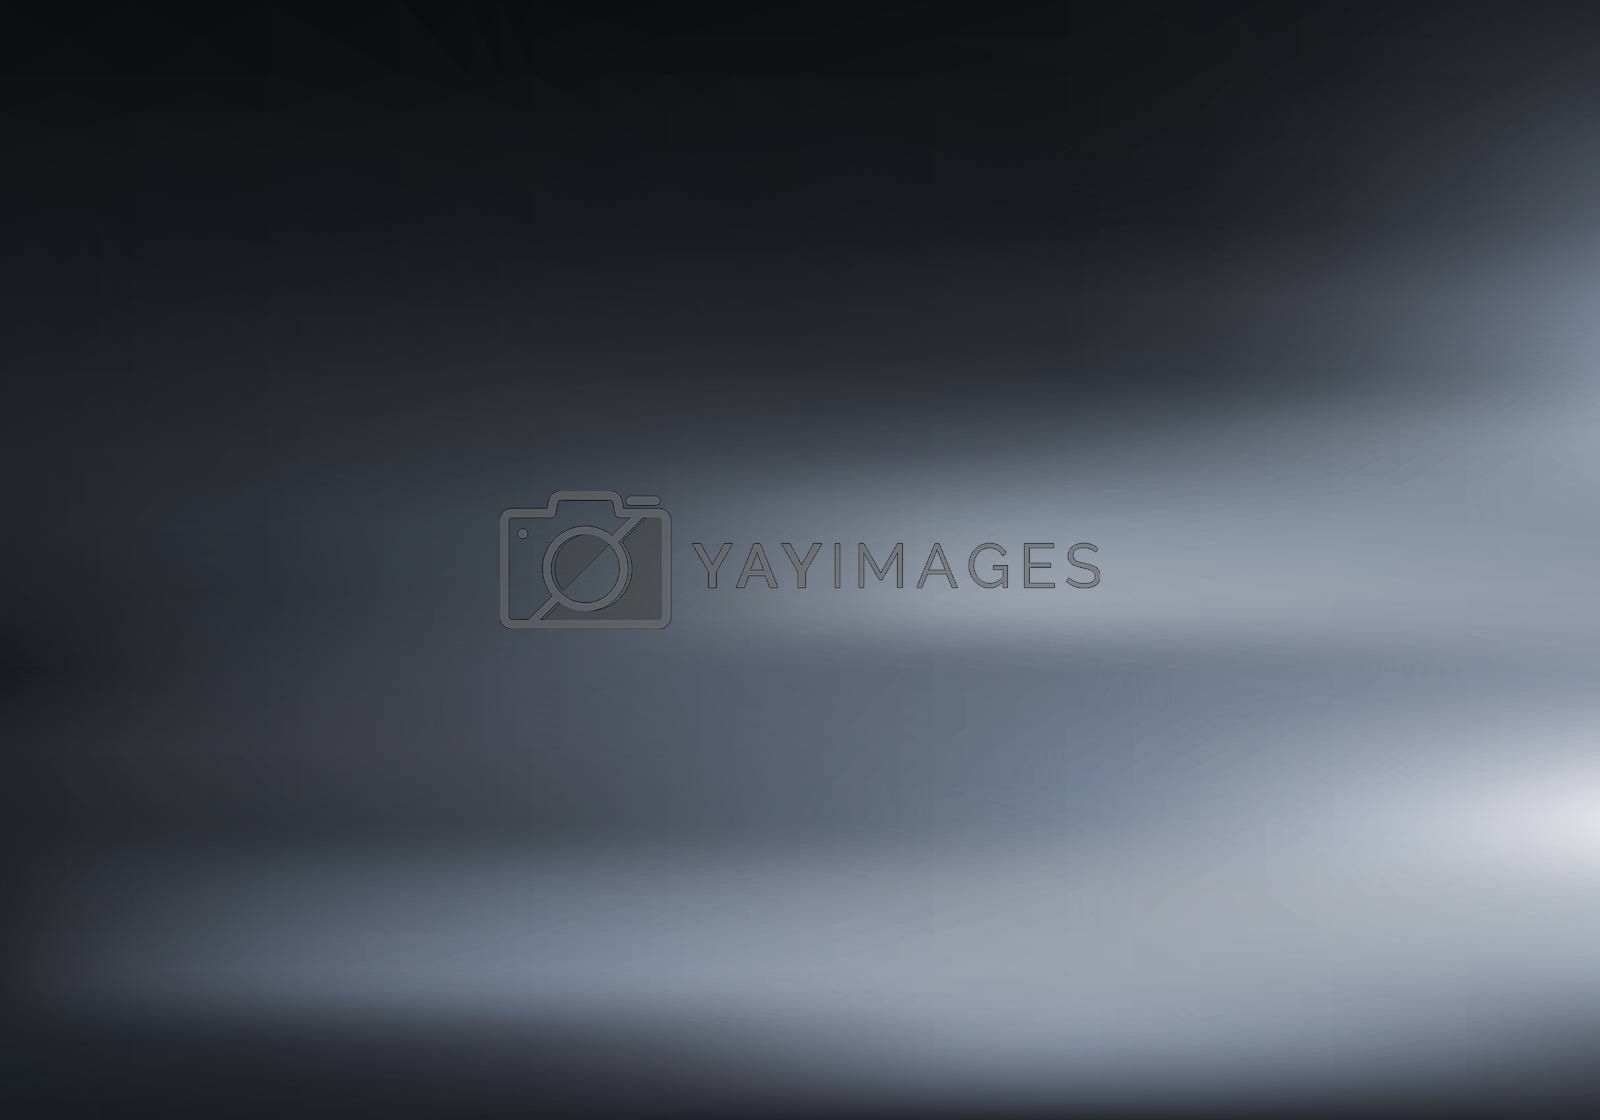 3D Black room with low light and shadow on dark background. Night illumination on wall and floor texture. Motion blurred background. Vector illustration